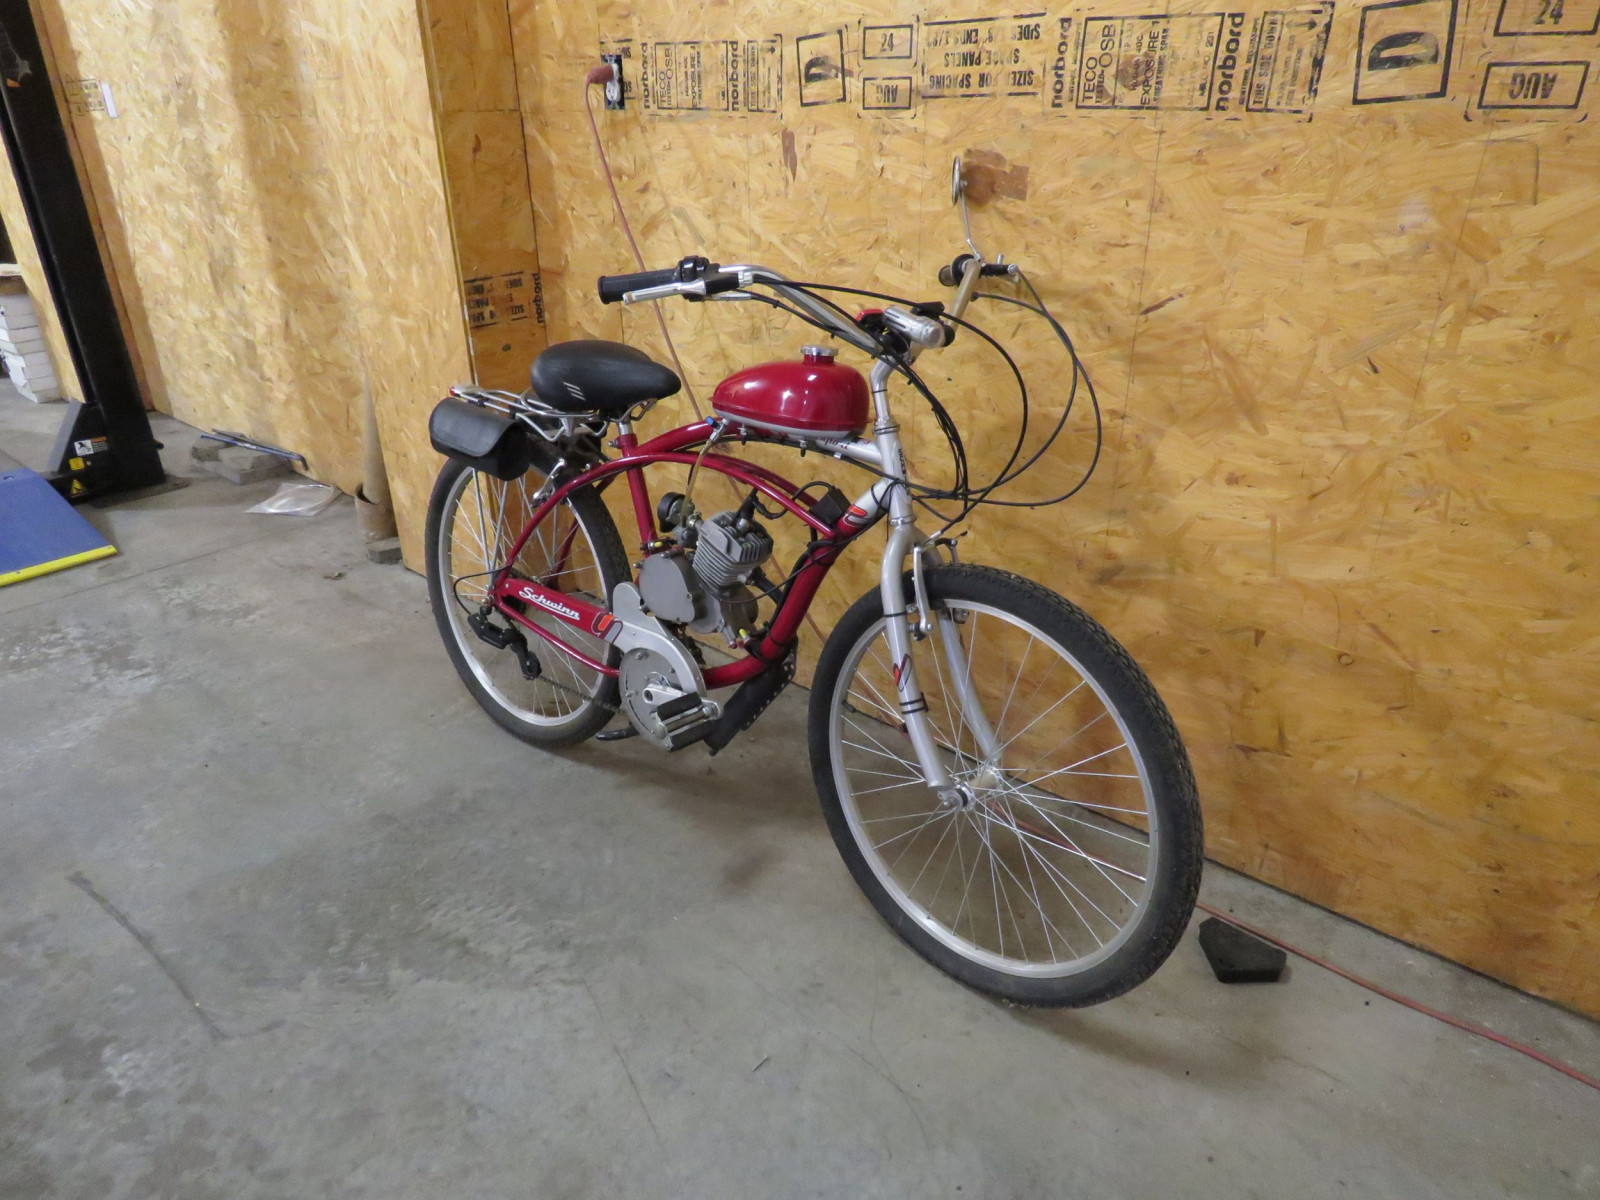 Schwinn Motorized Bicycle - Image 1